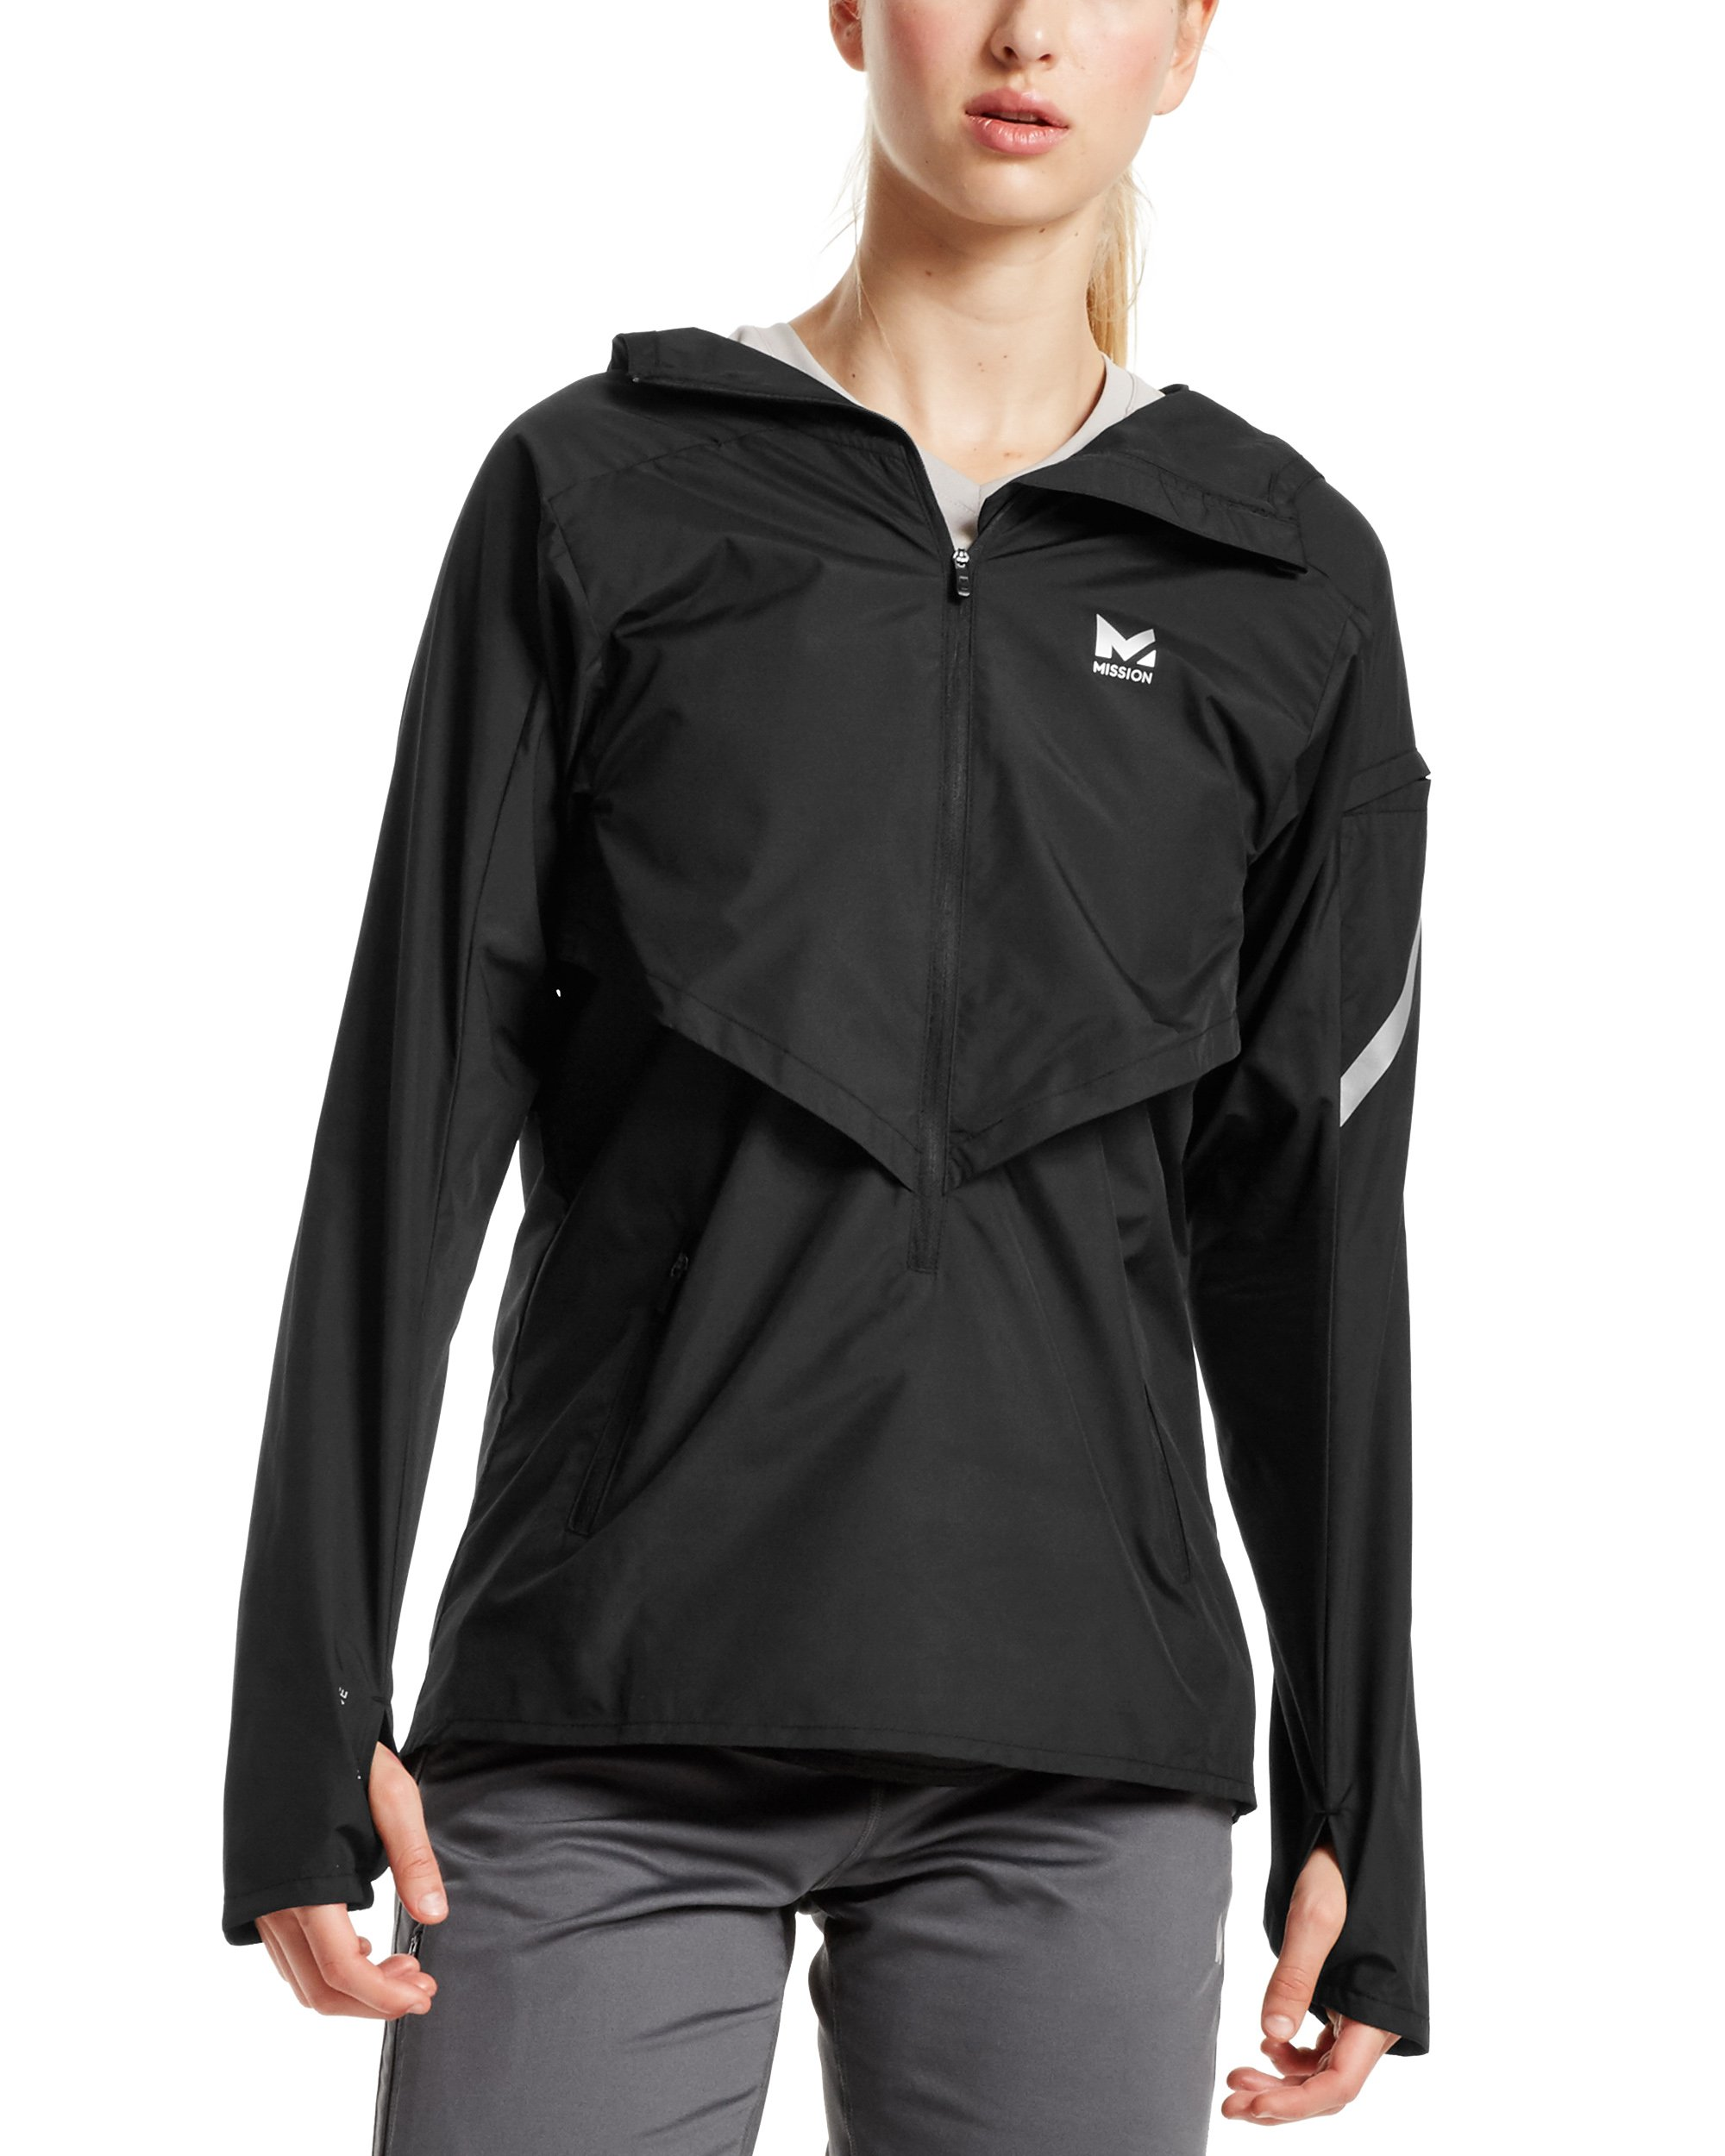 Mission Women's VaporActive Barometer Running Jacket, Moonless Night, Medium by MISSION (Image #1)